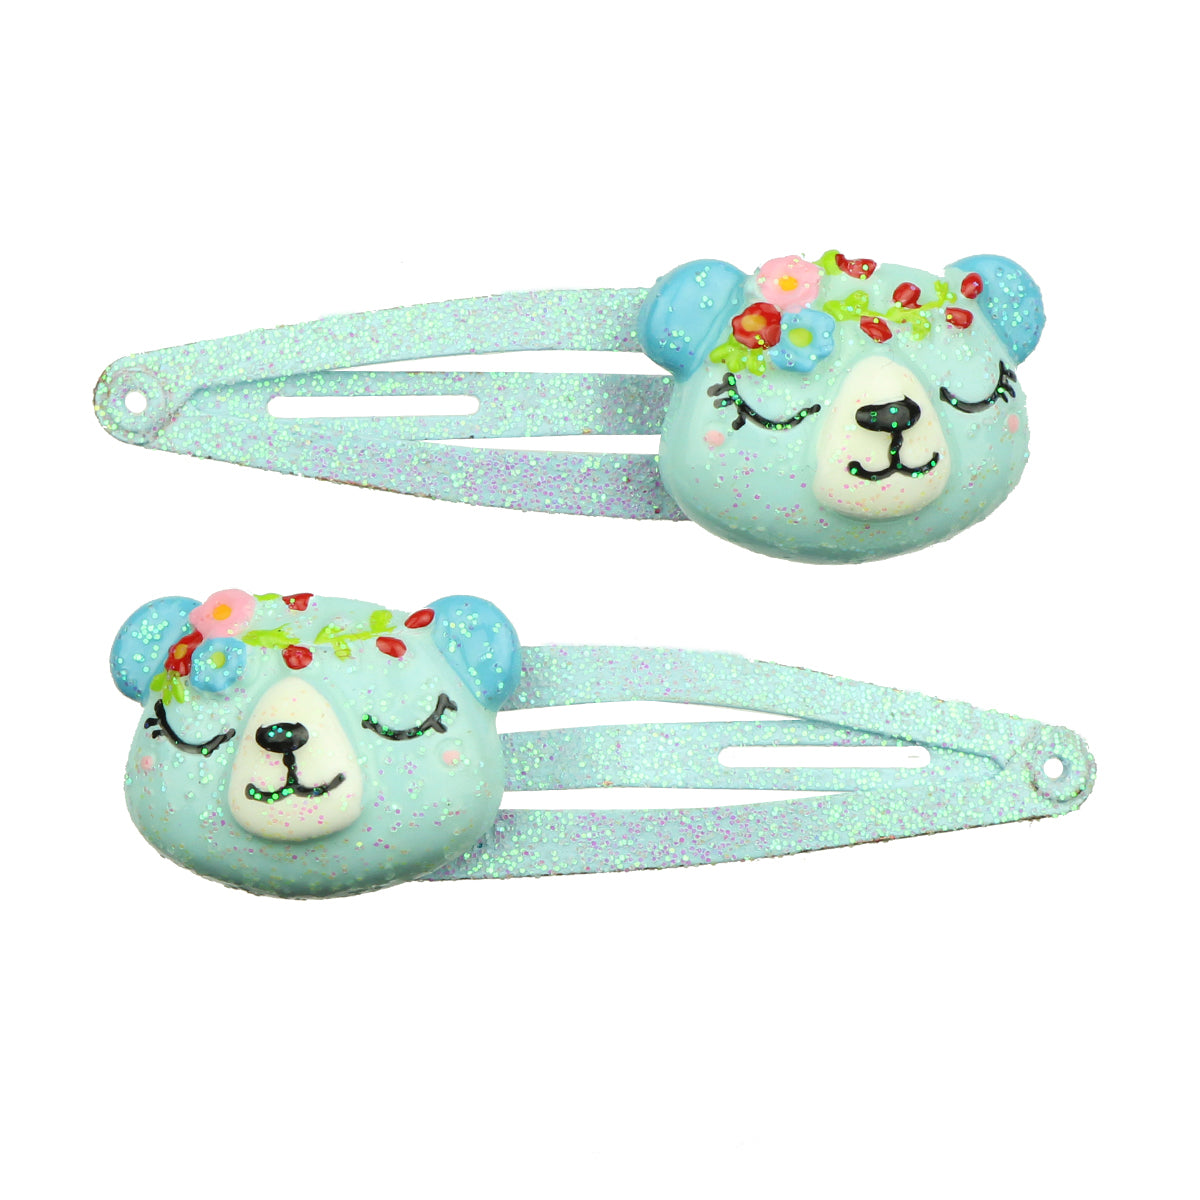 poly resin figures animal 3D hair accessory clip set wholesale at factory price 7722 - SOHOBUCKS CO.,LIMITED